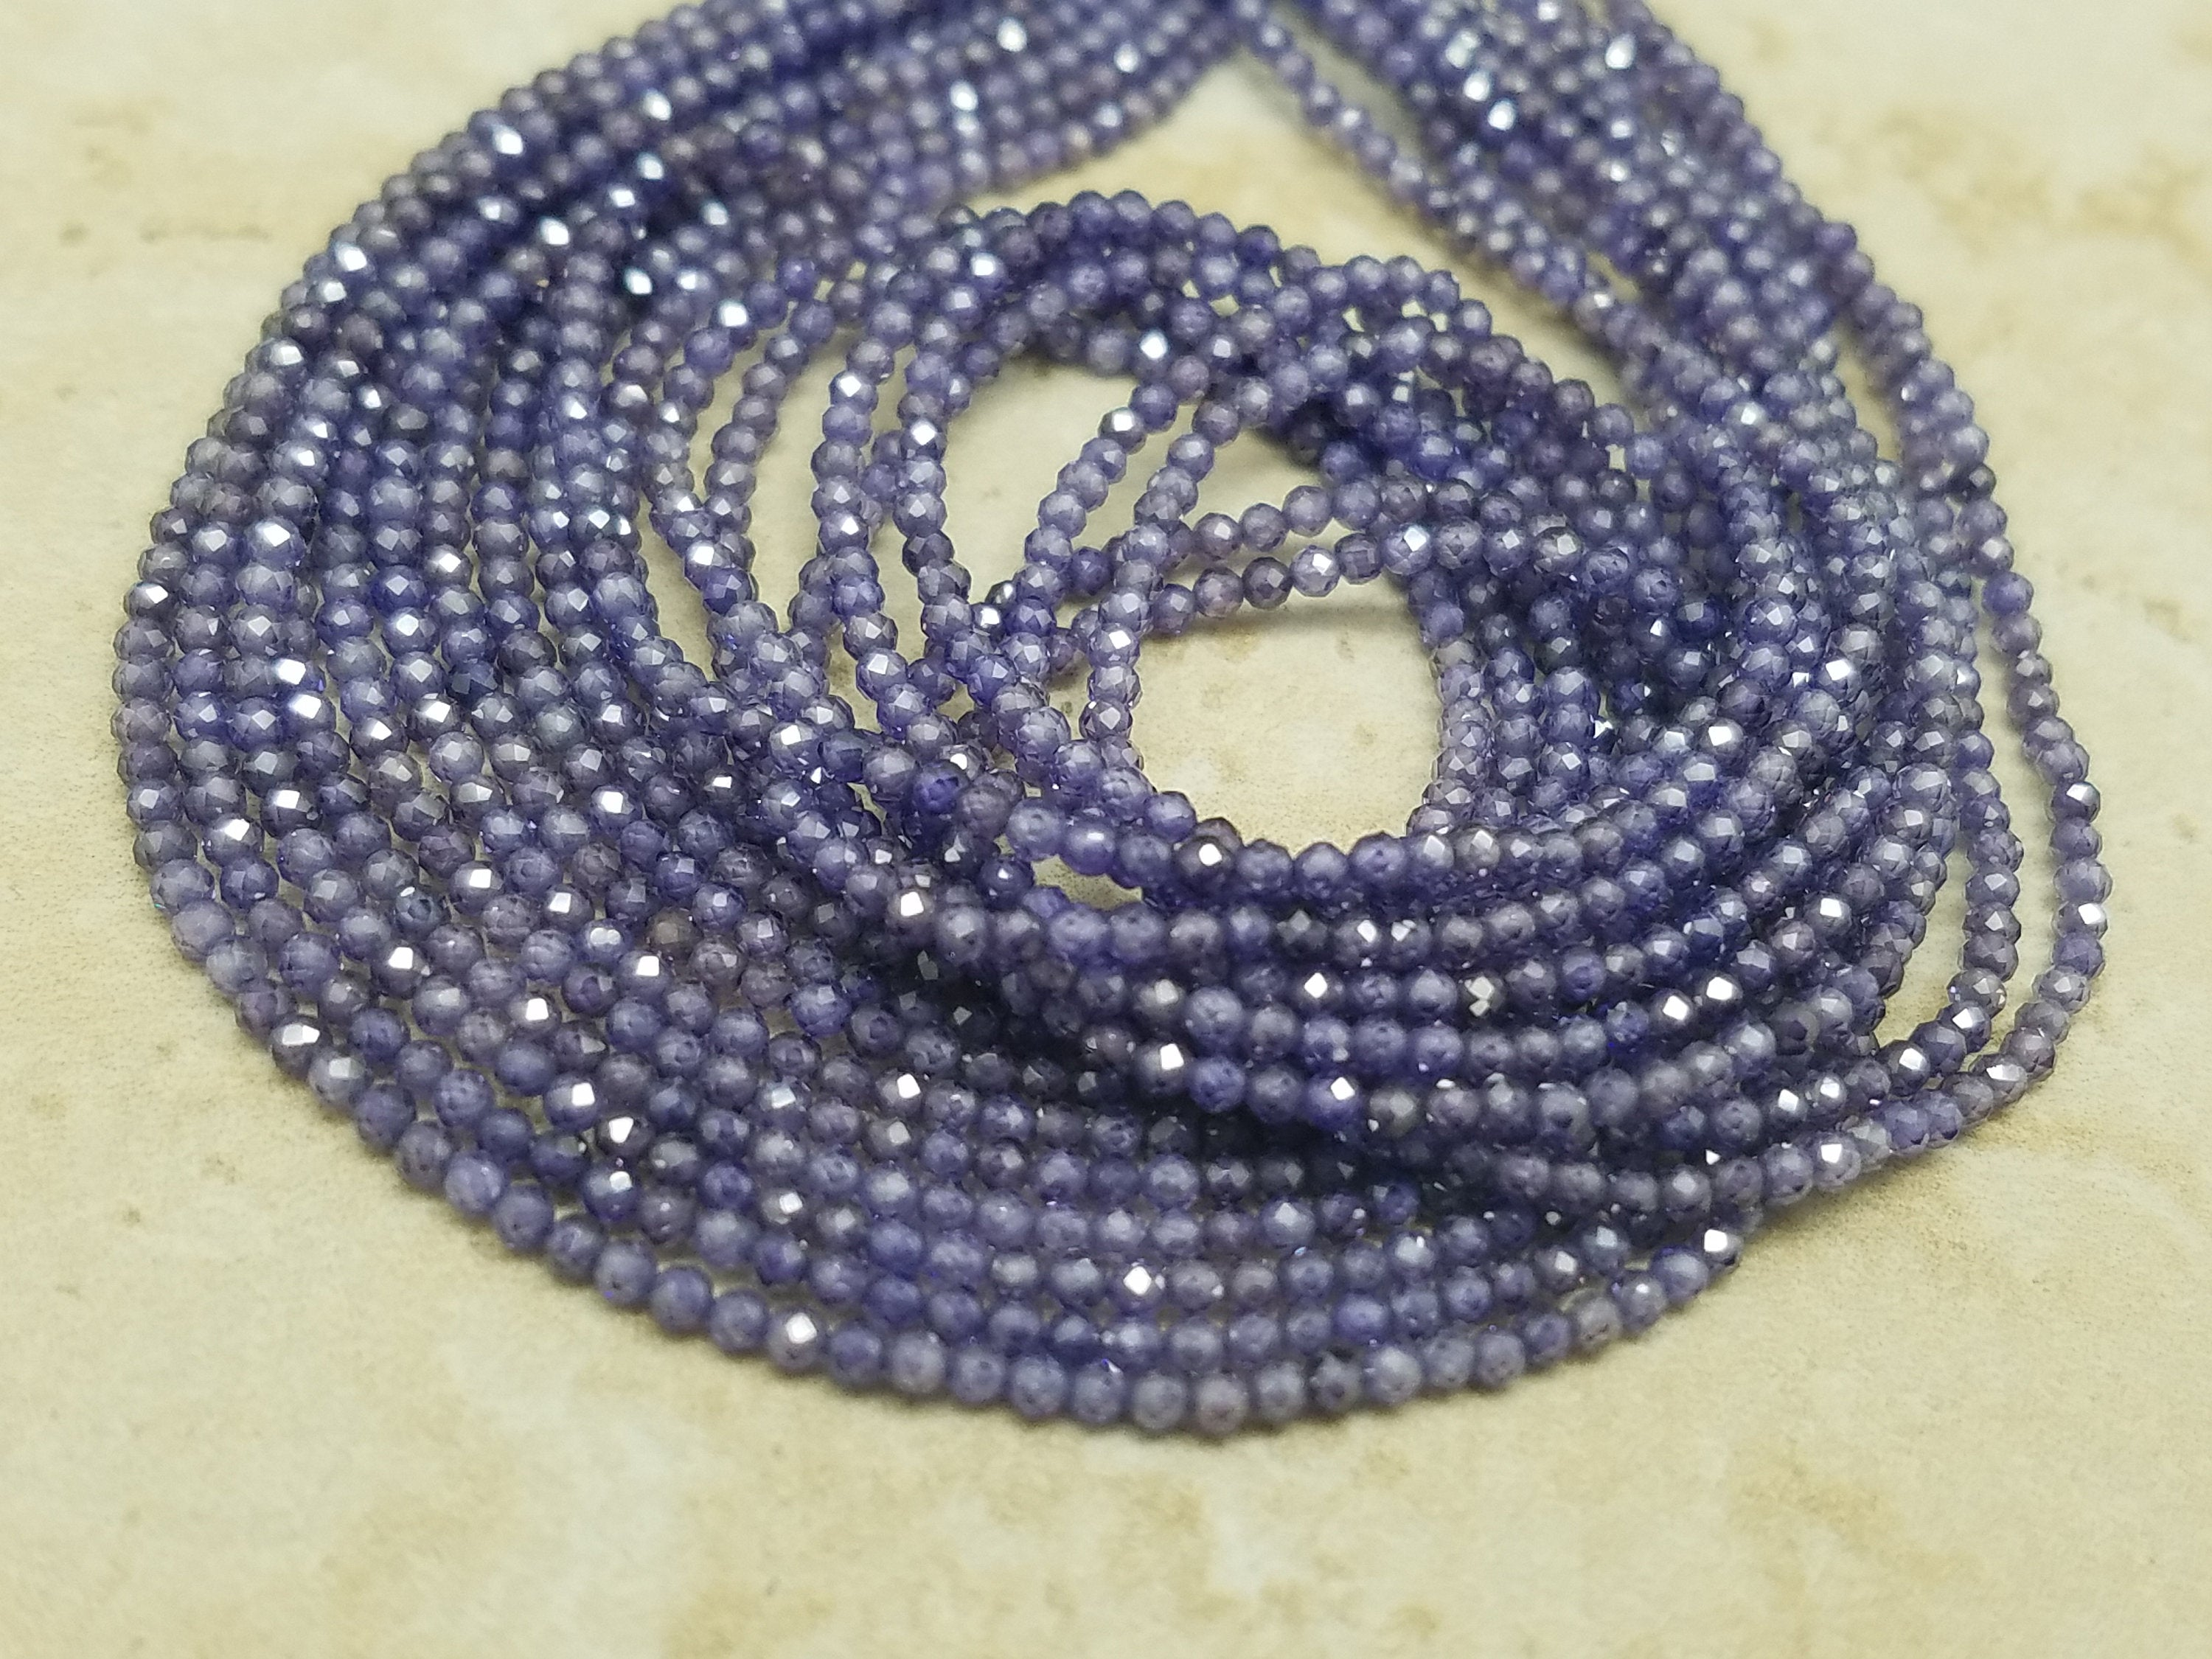 2mm or 3mm Amethyst Cubic Zirconia Faceted Round Beads, 15 inch